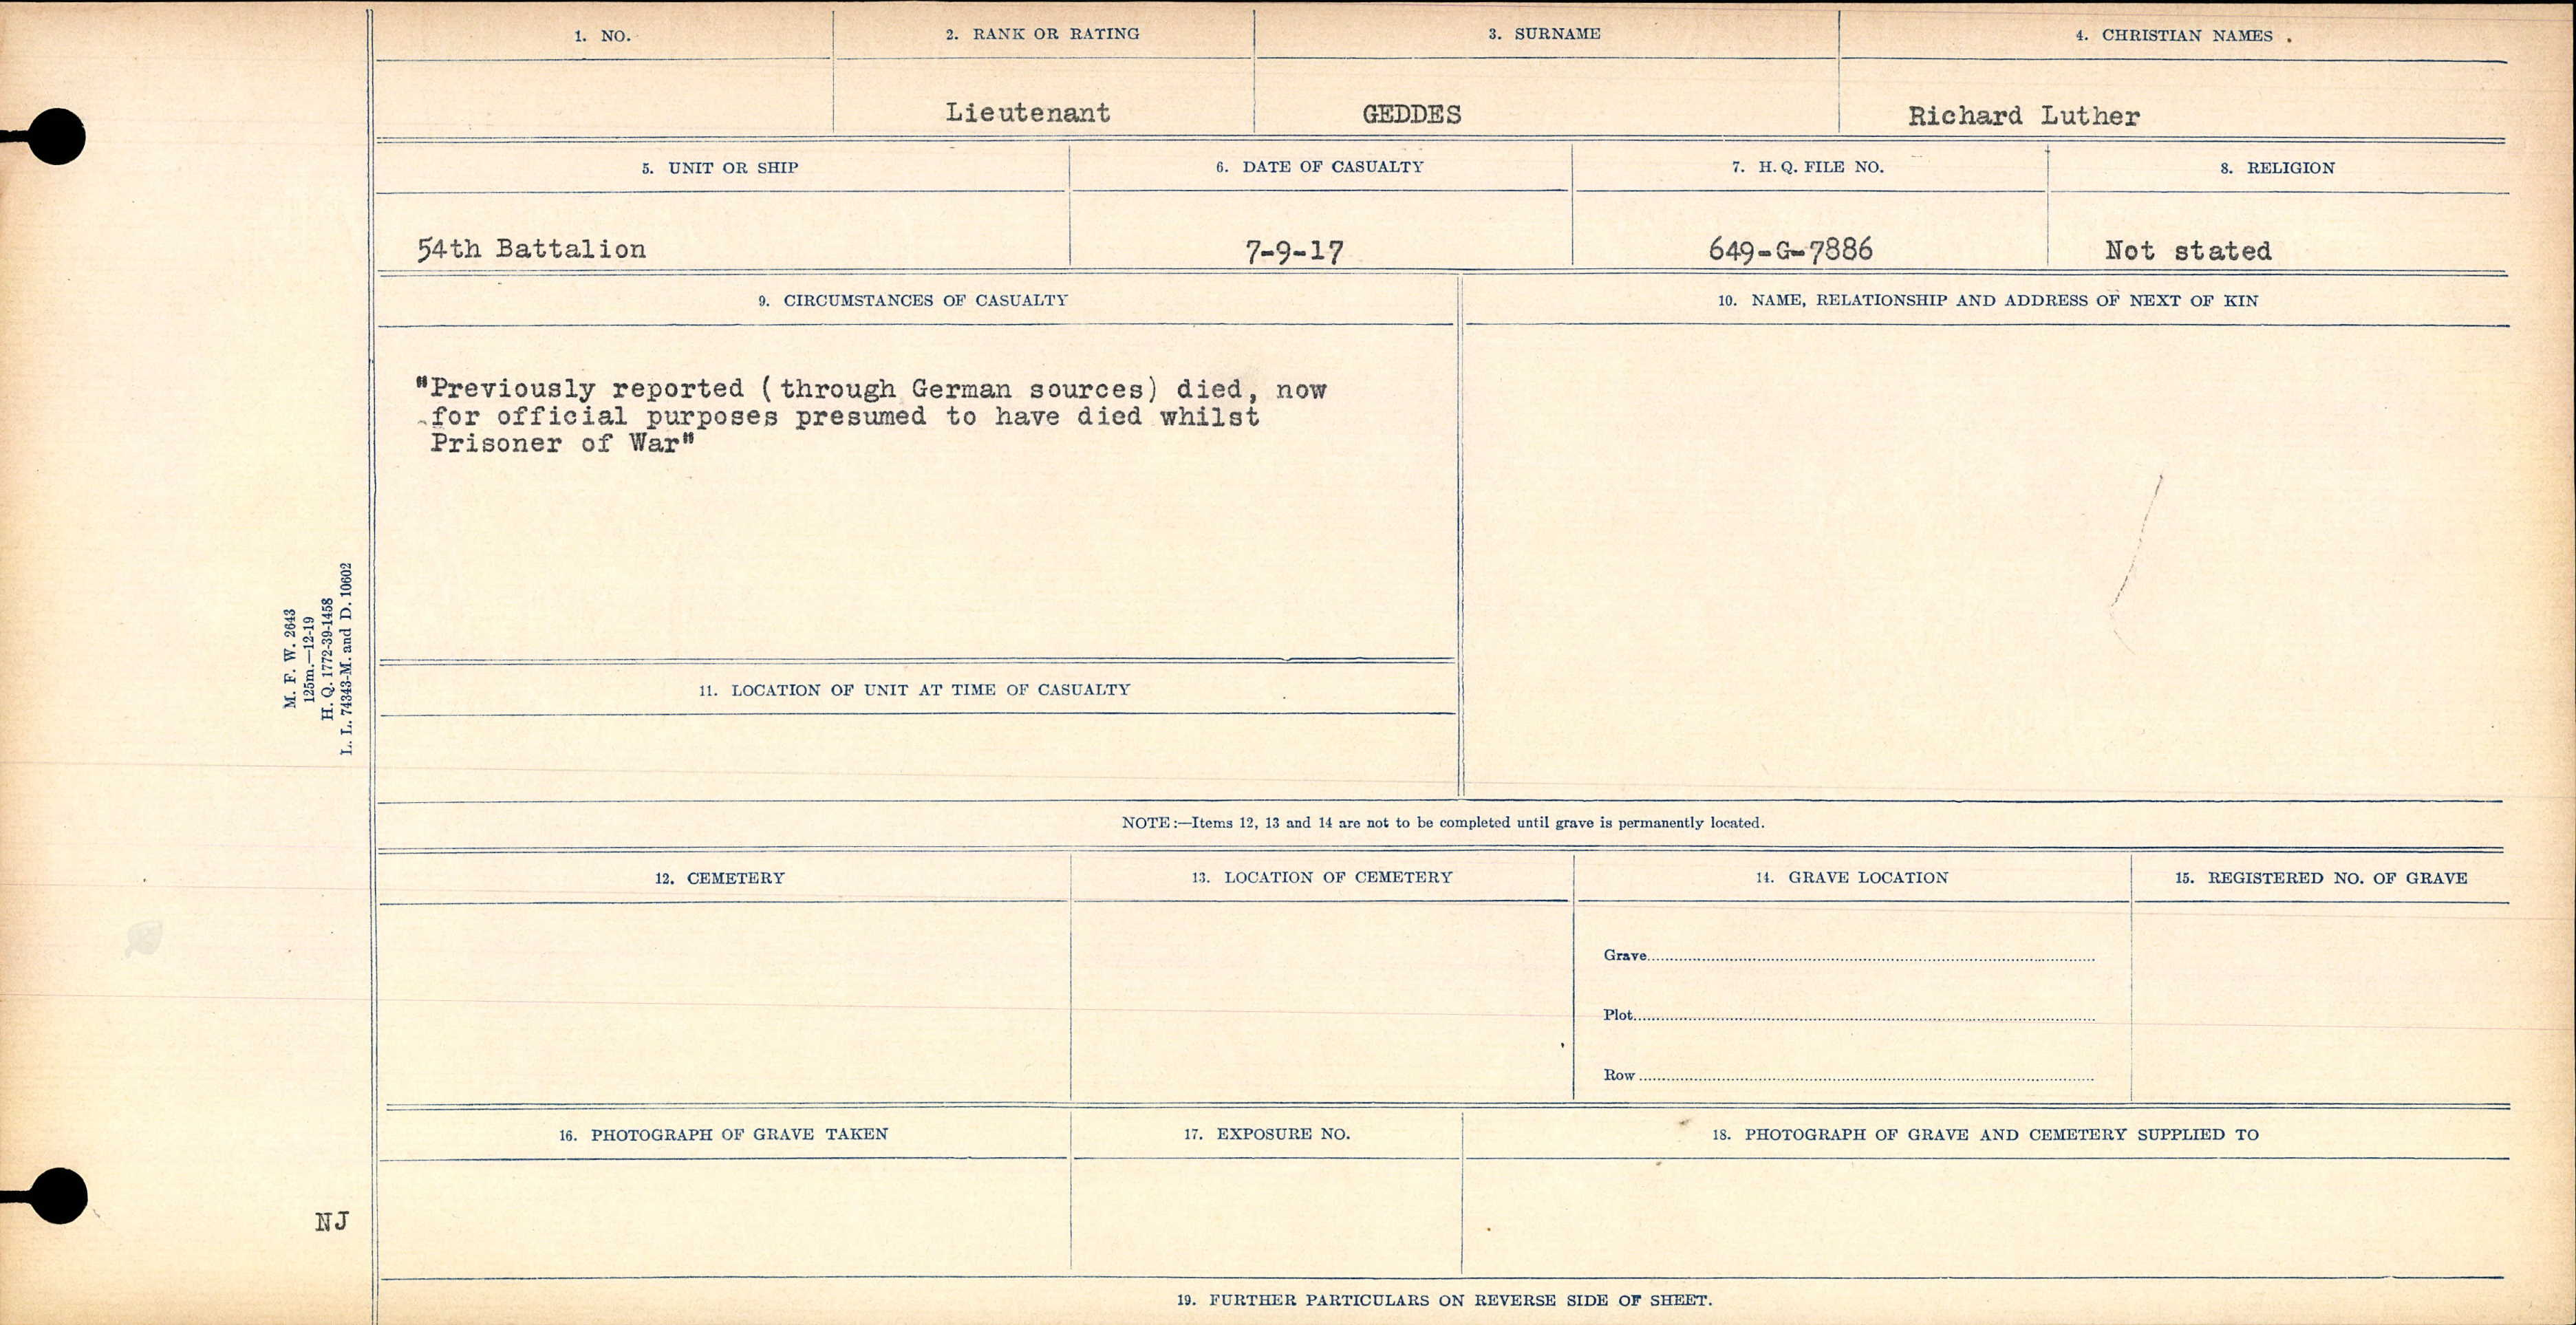 Circumstances of Death Registers– Lt. Geddes died while a Prisoner of War in the vicinity of Lens. This is reported on his Circumstance of Death record.